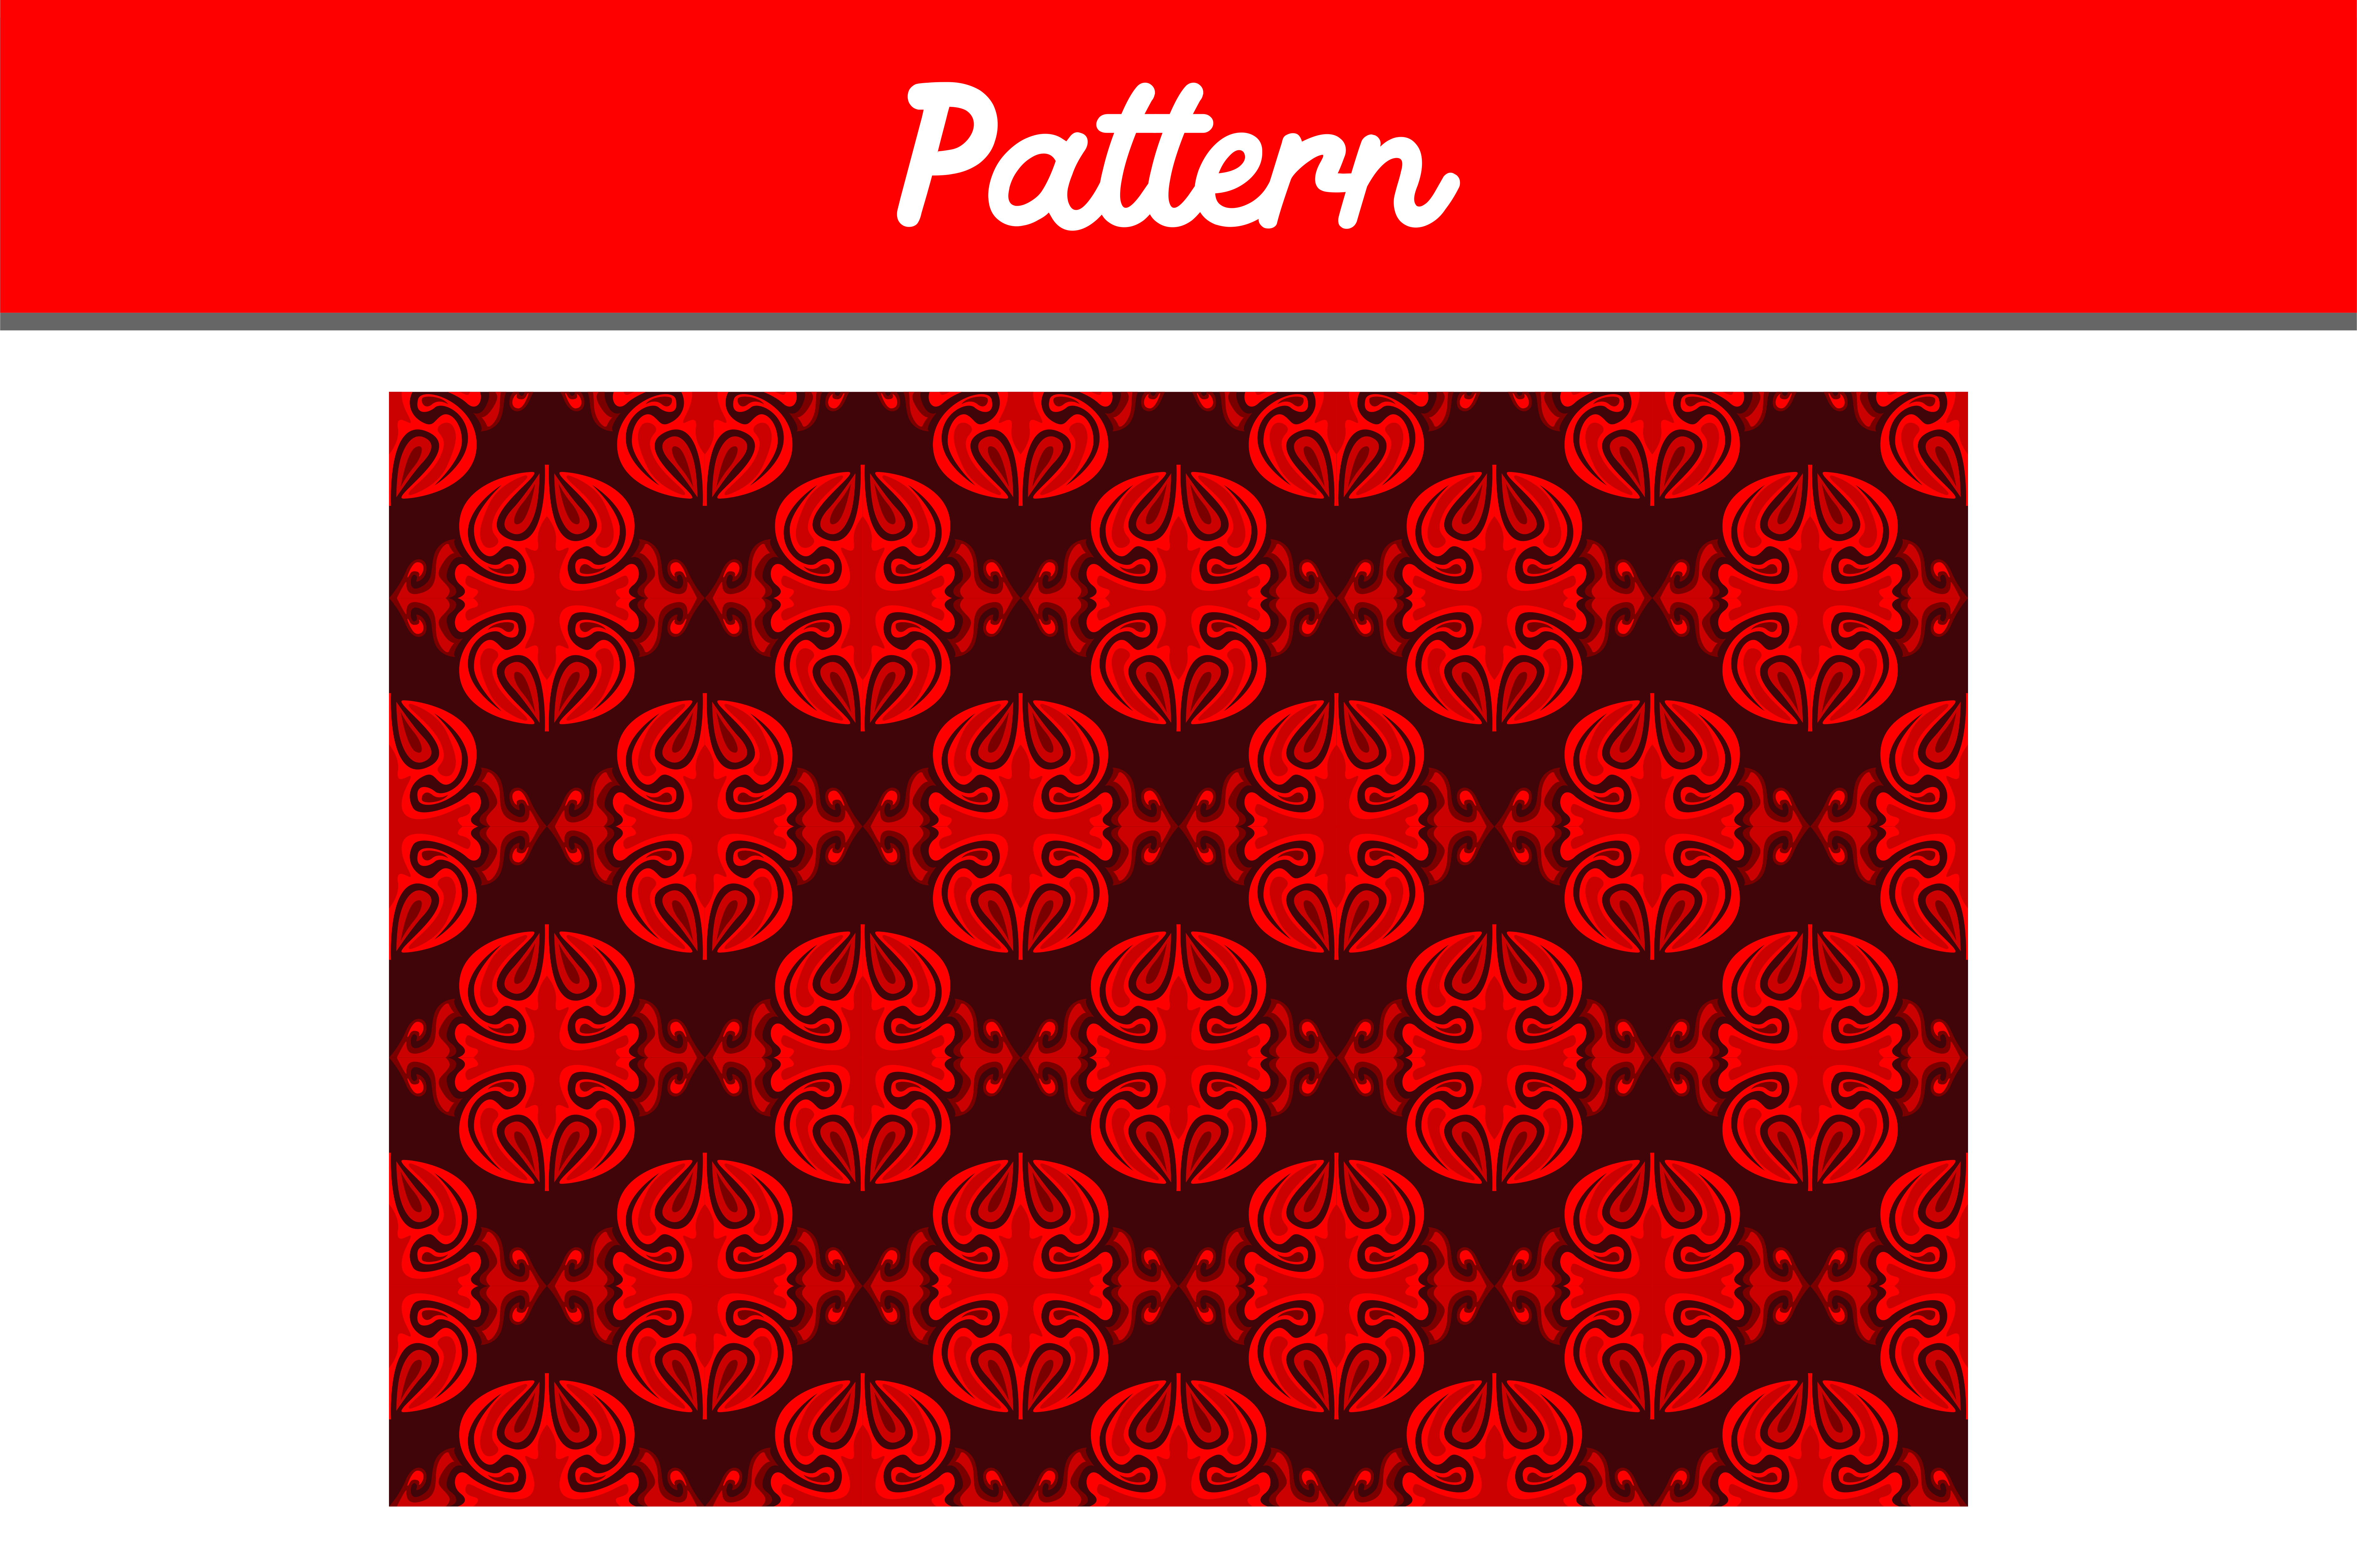 Download Free Red Background Ornament Pattern Graphic By Arief Sapta Adjie Ii for Cricut Explore, Silhouette and other cutting machines.